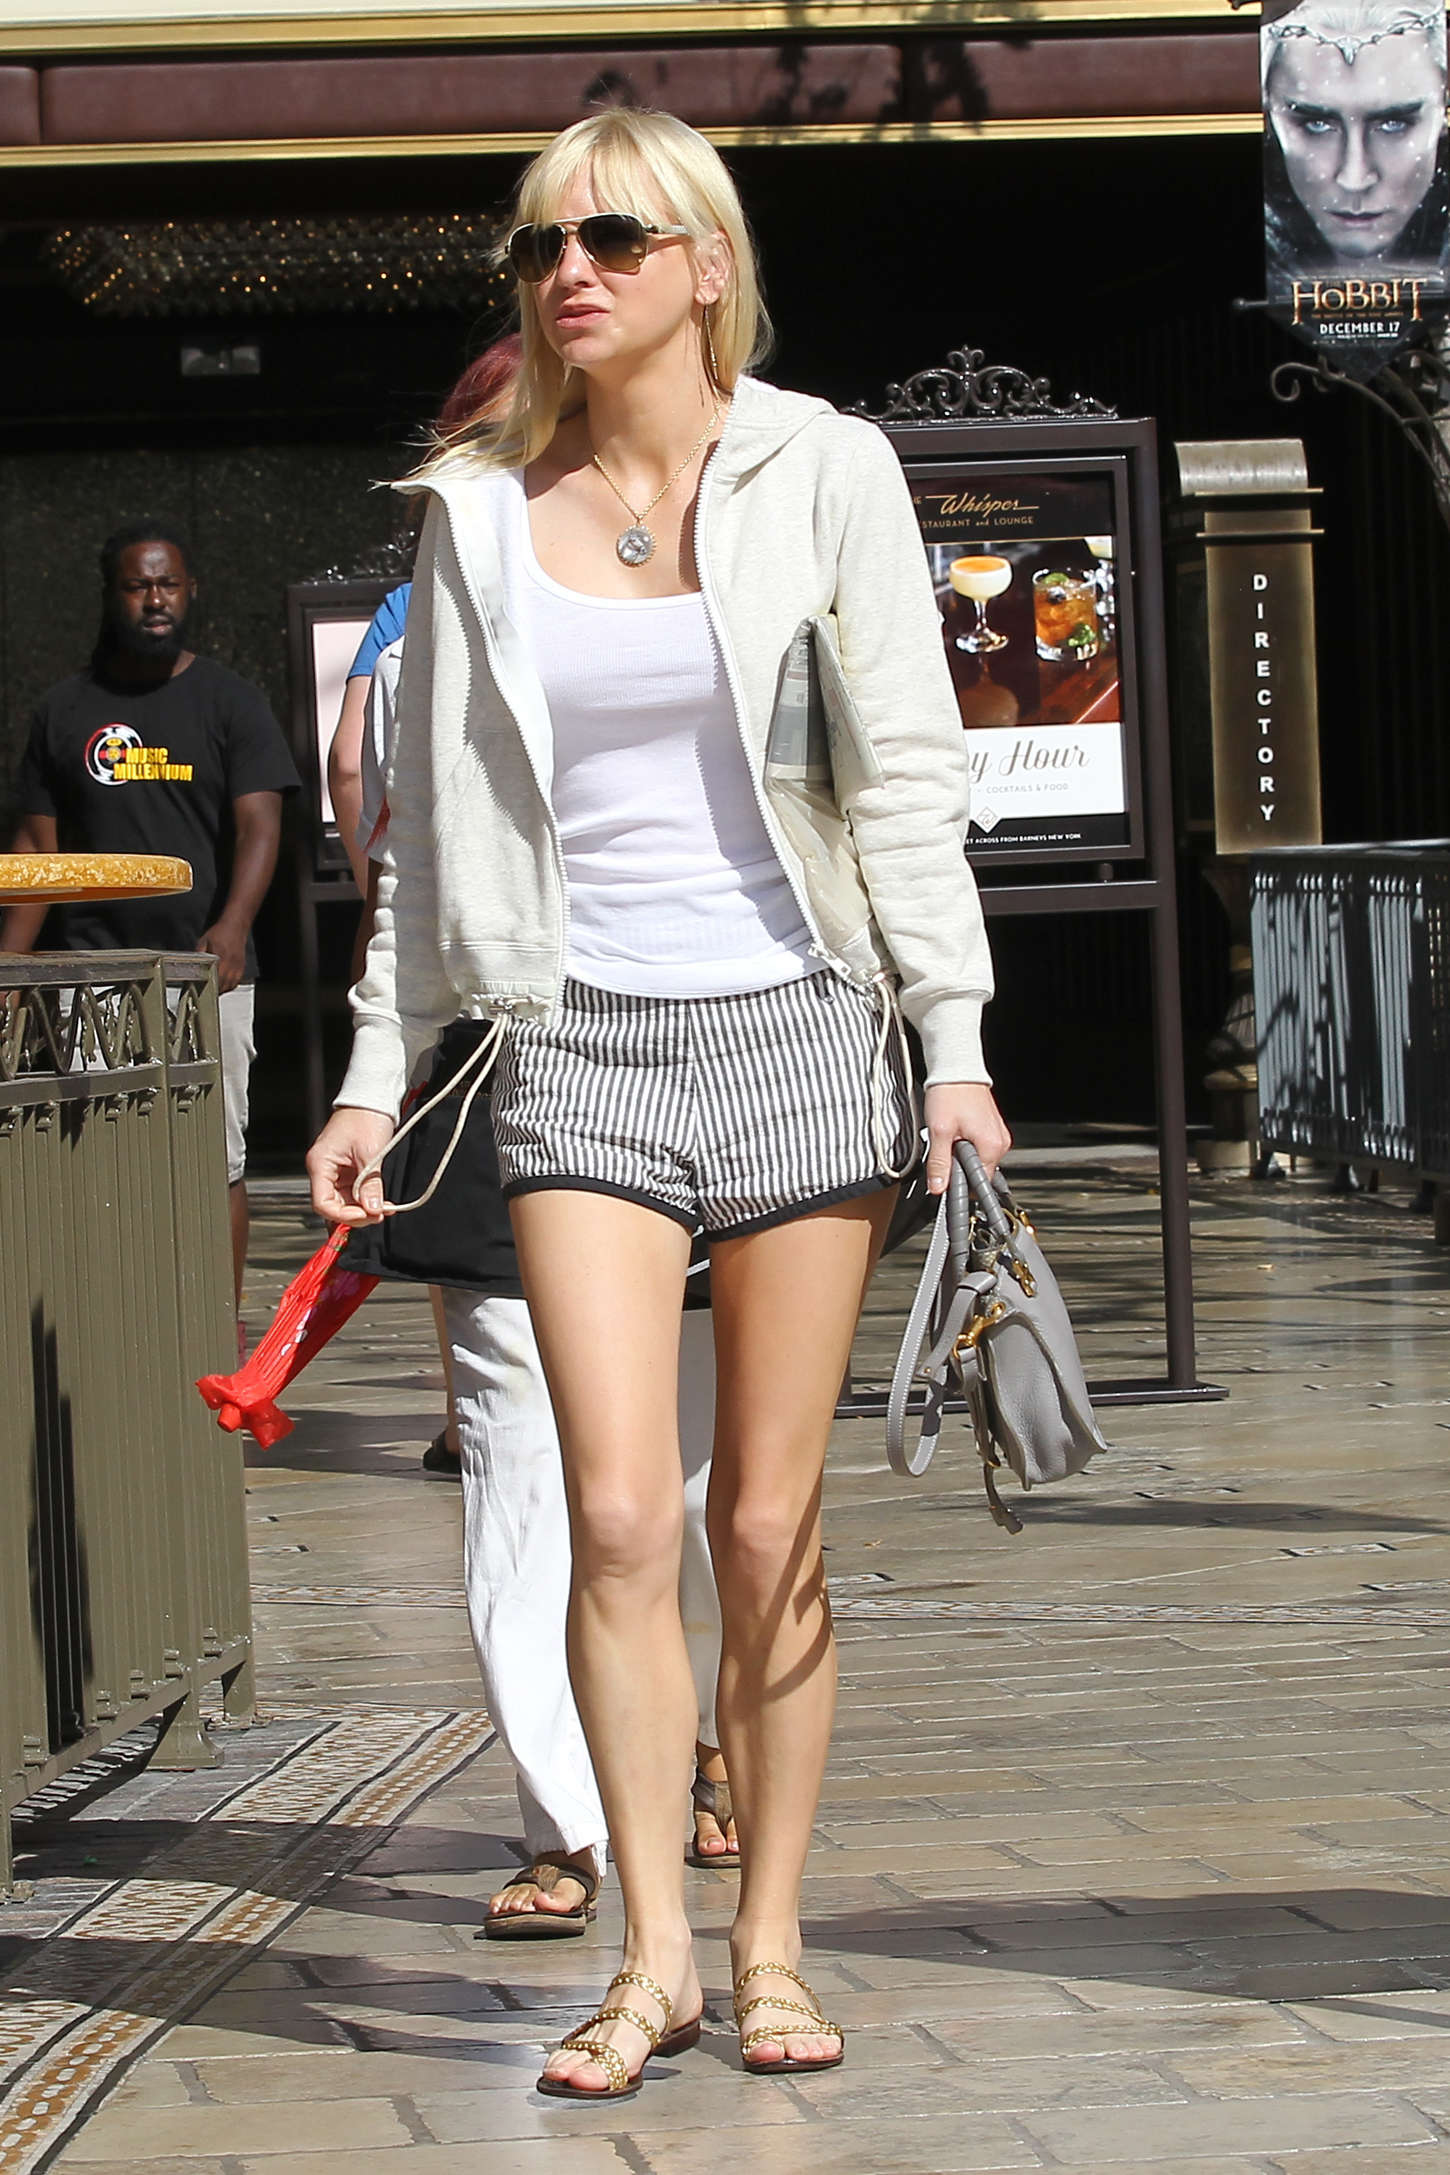 Anna-Faris-in-Shorts--07.jpg